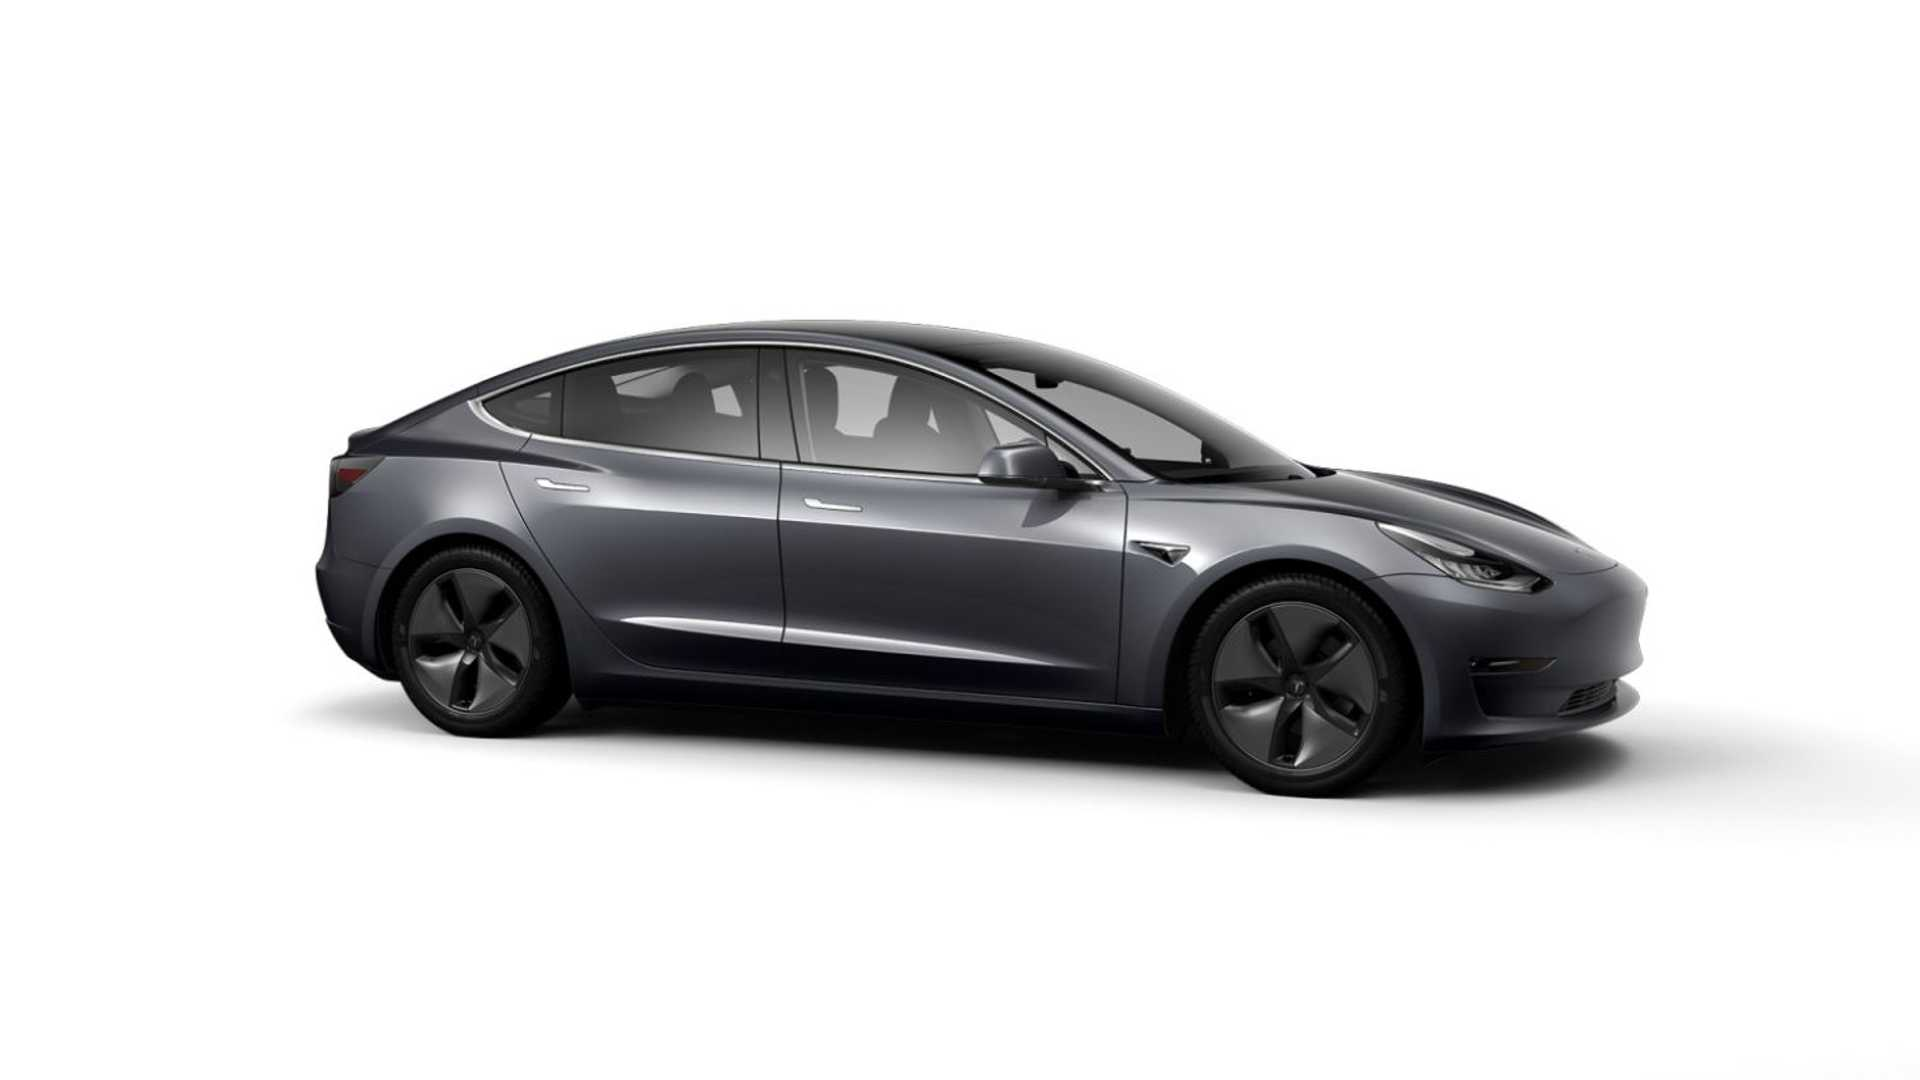 First Registrations Of Tesla Model 3 SR+ Spotted In Norway